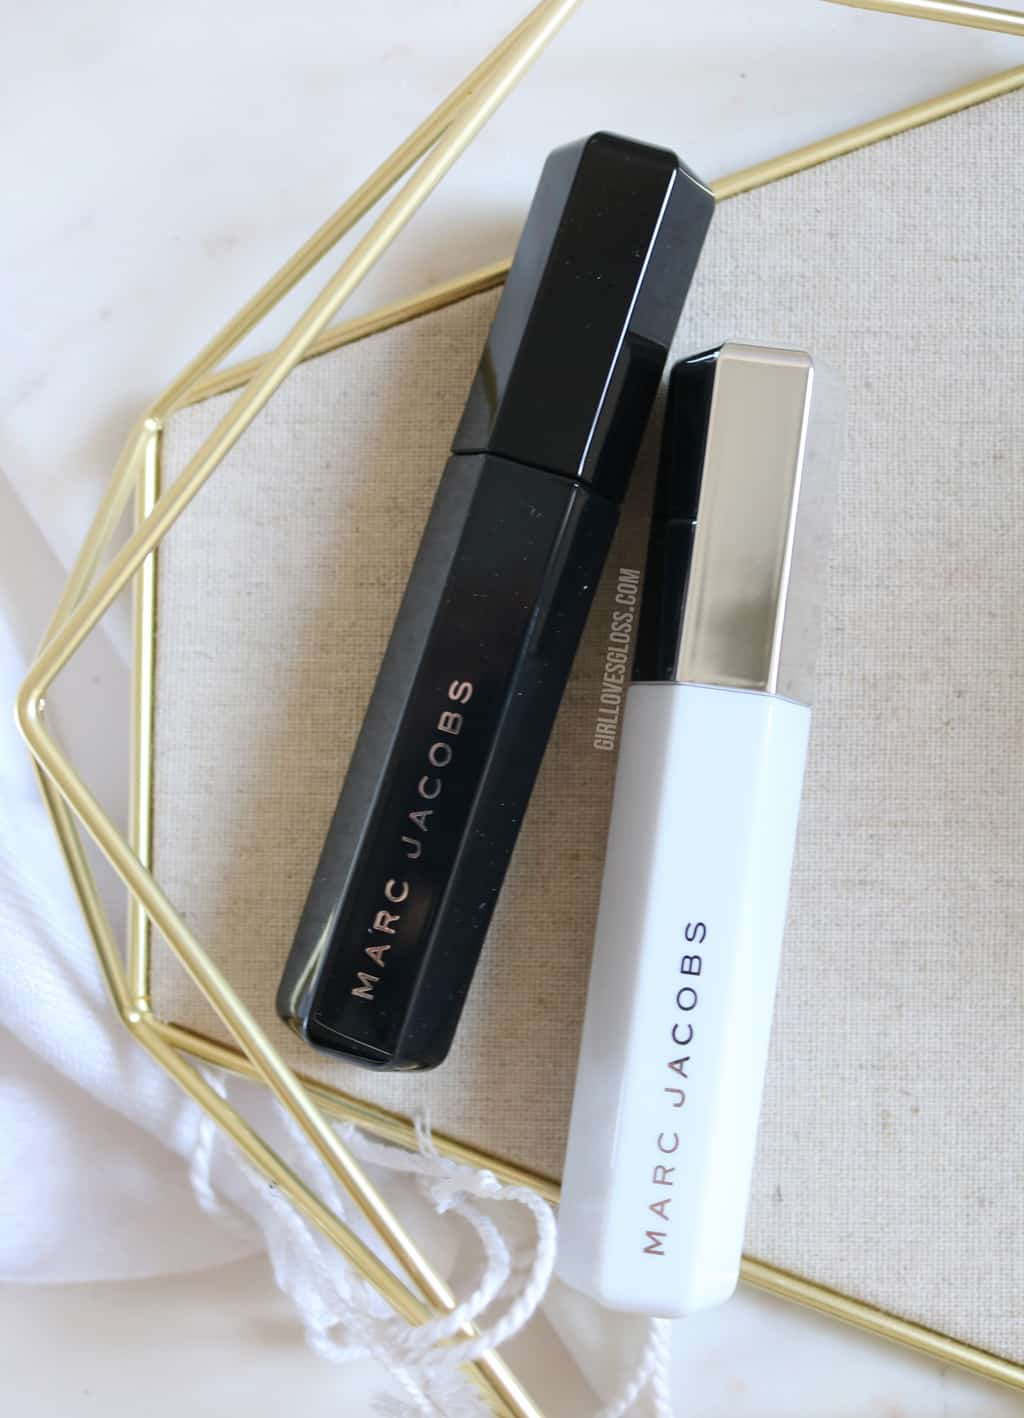 Marc Jacobs Velvet Primer before and after review